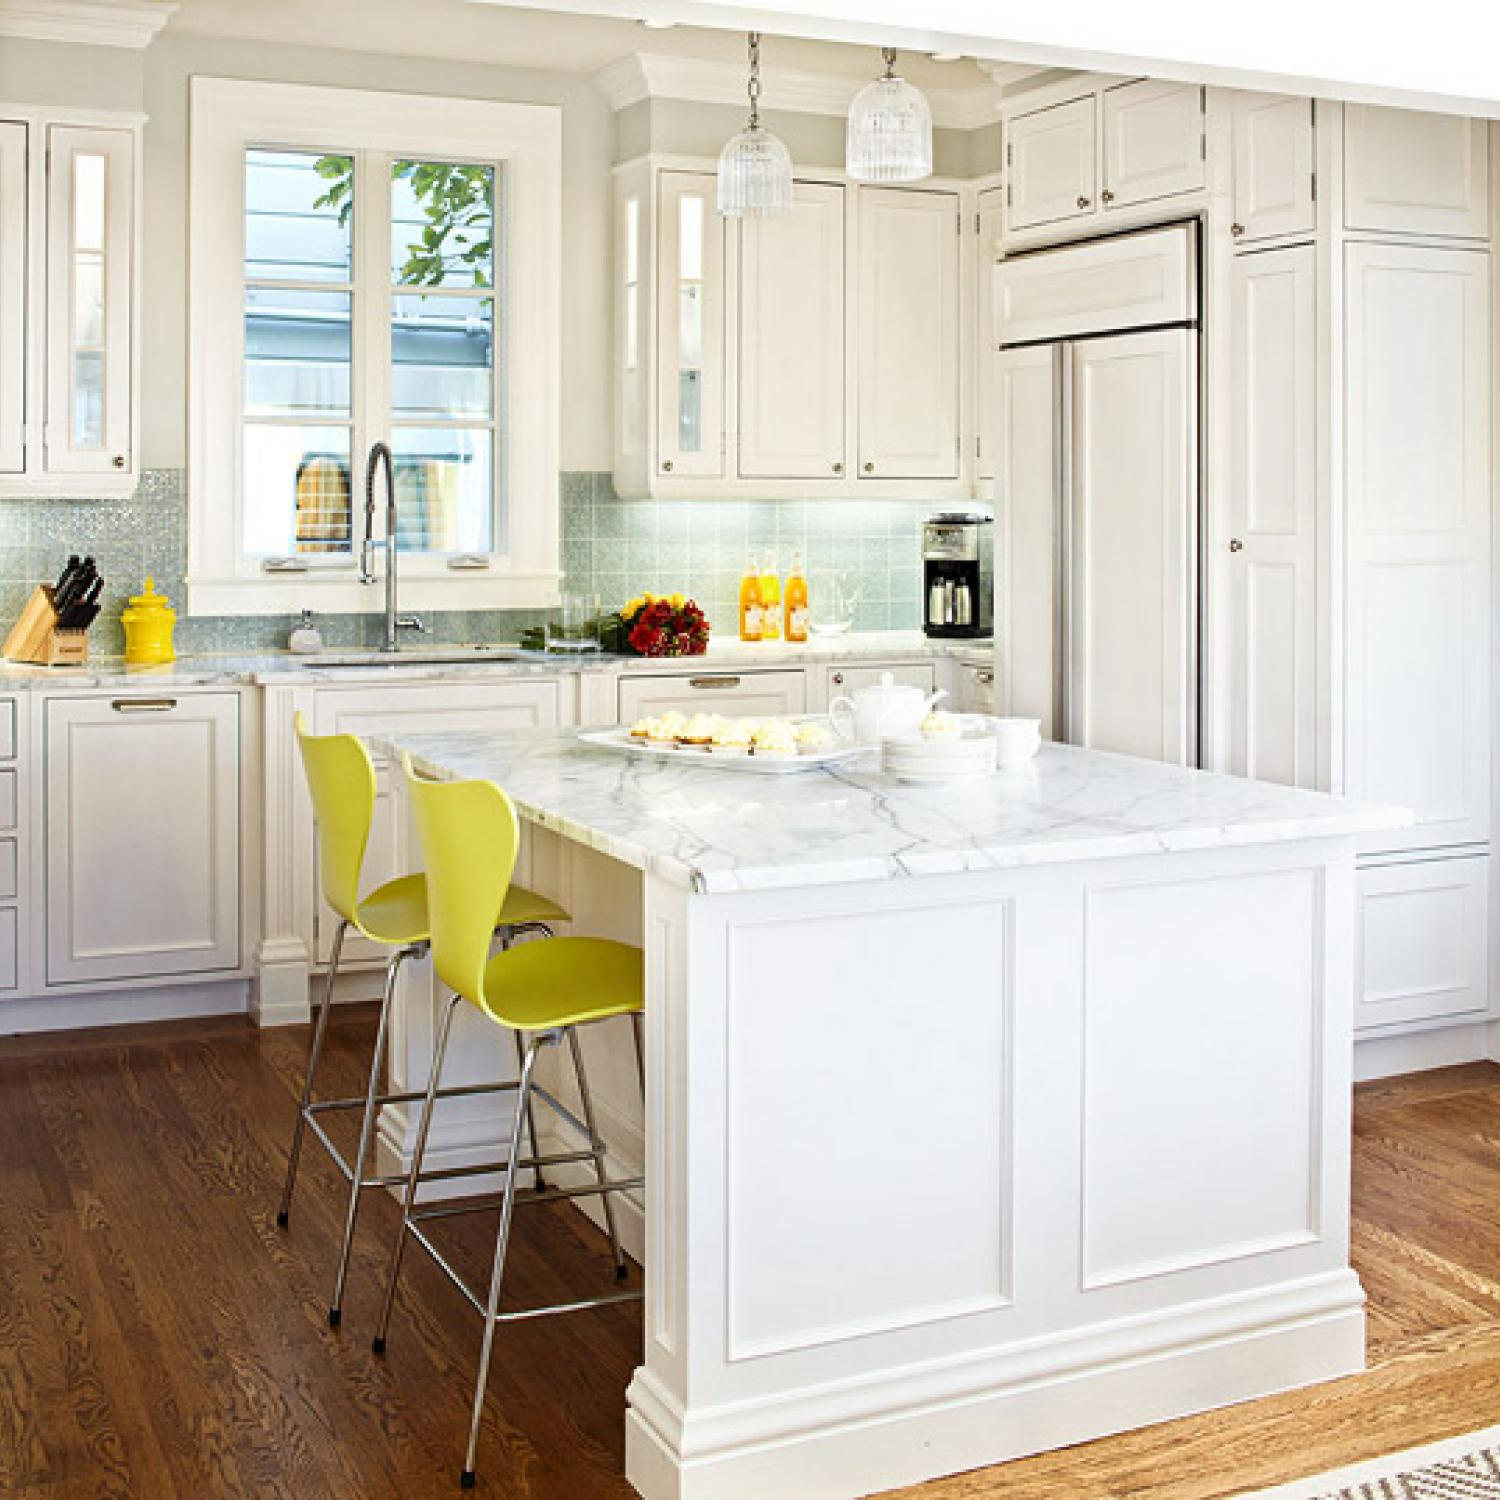 Countertops And Backsplash Combinations Design Ideas For White Kitchens Traditional Home